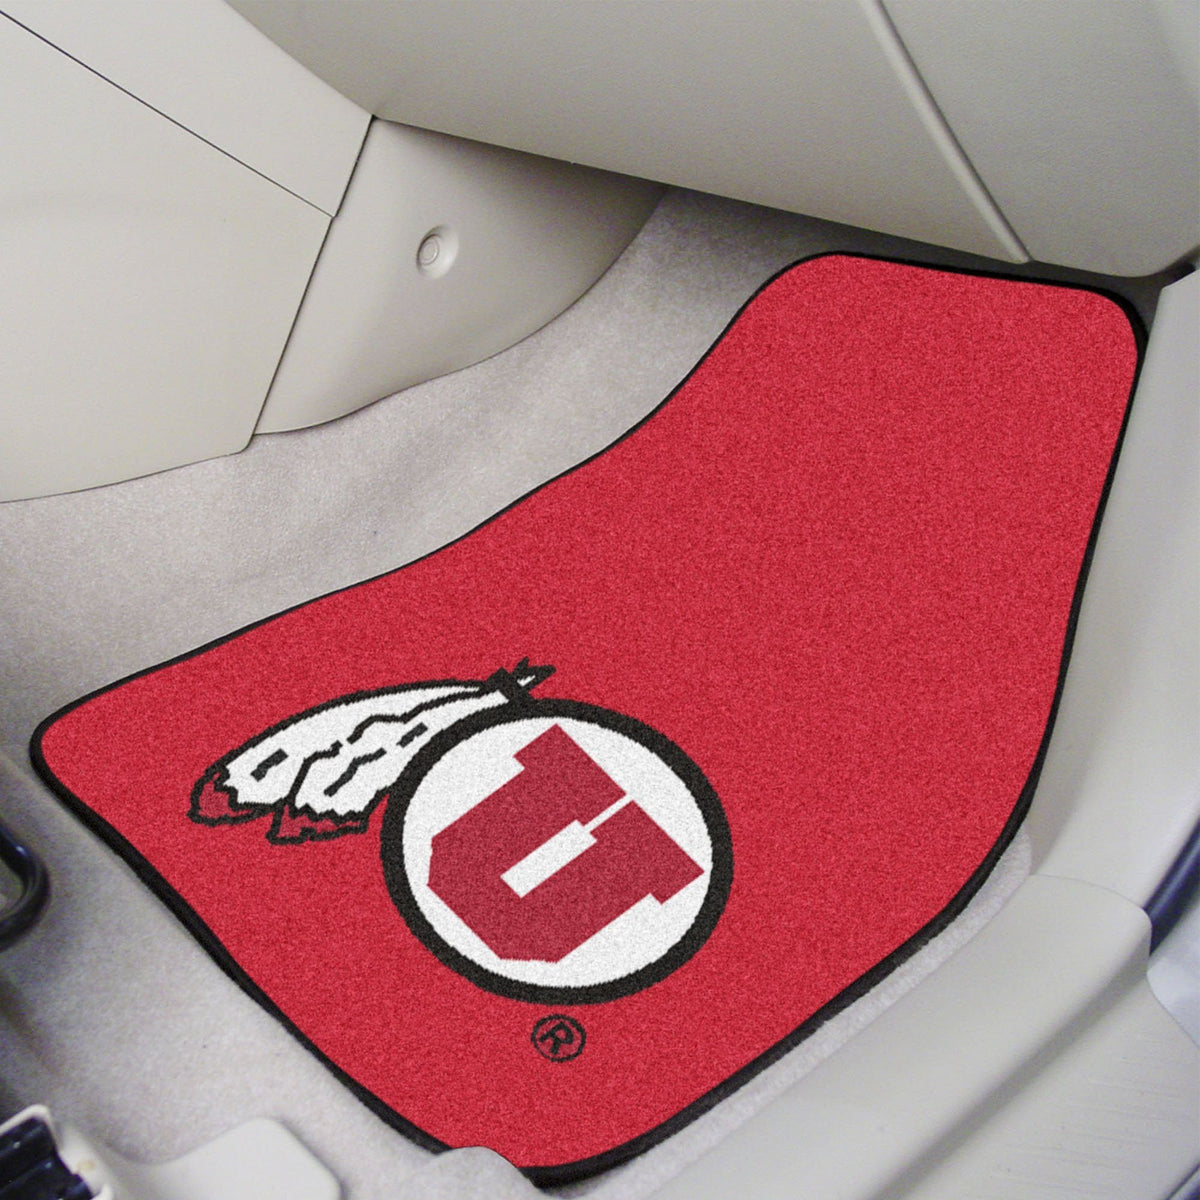 Collegiate - Carpet Car Mat, 2-Piece Set: T - Z Collegiate Car Mat, Front Car Mats, 2-pc Carpet Car Mat Set, Collegiate, Auto Fan Mats Utah